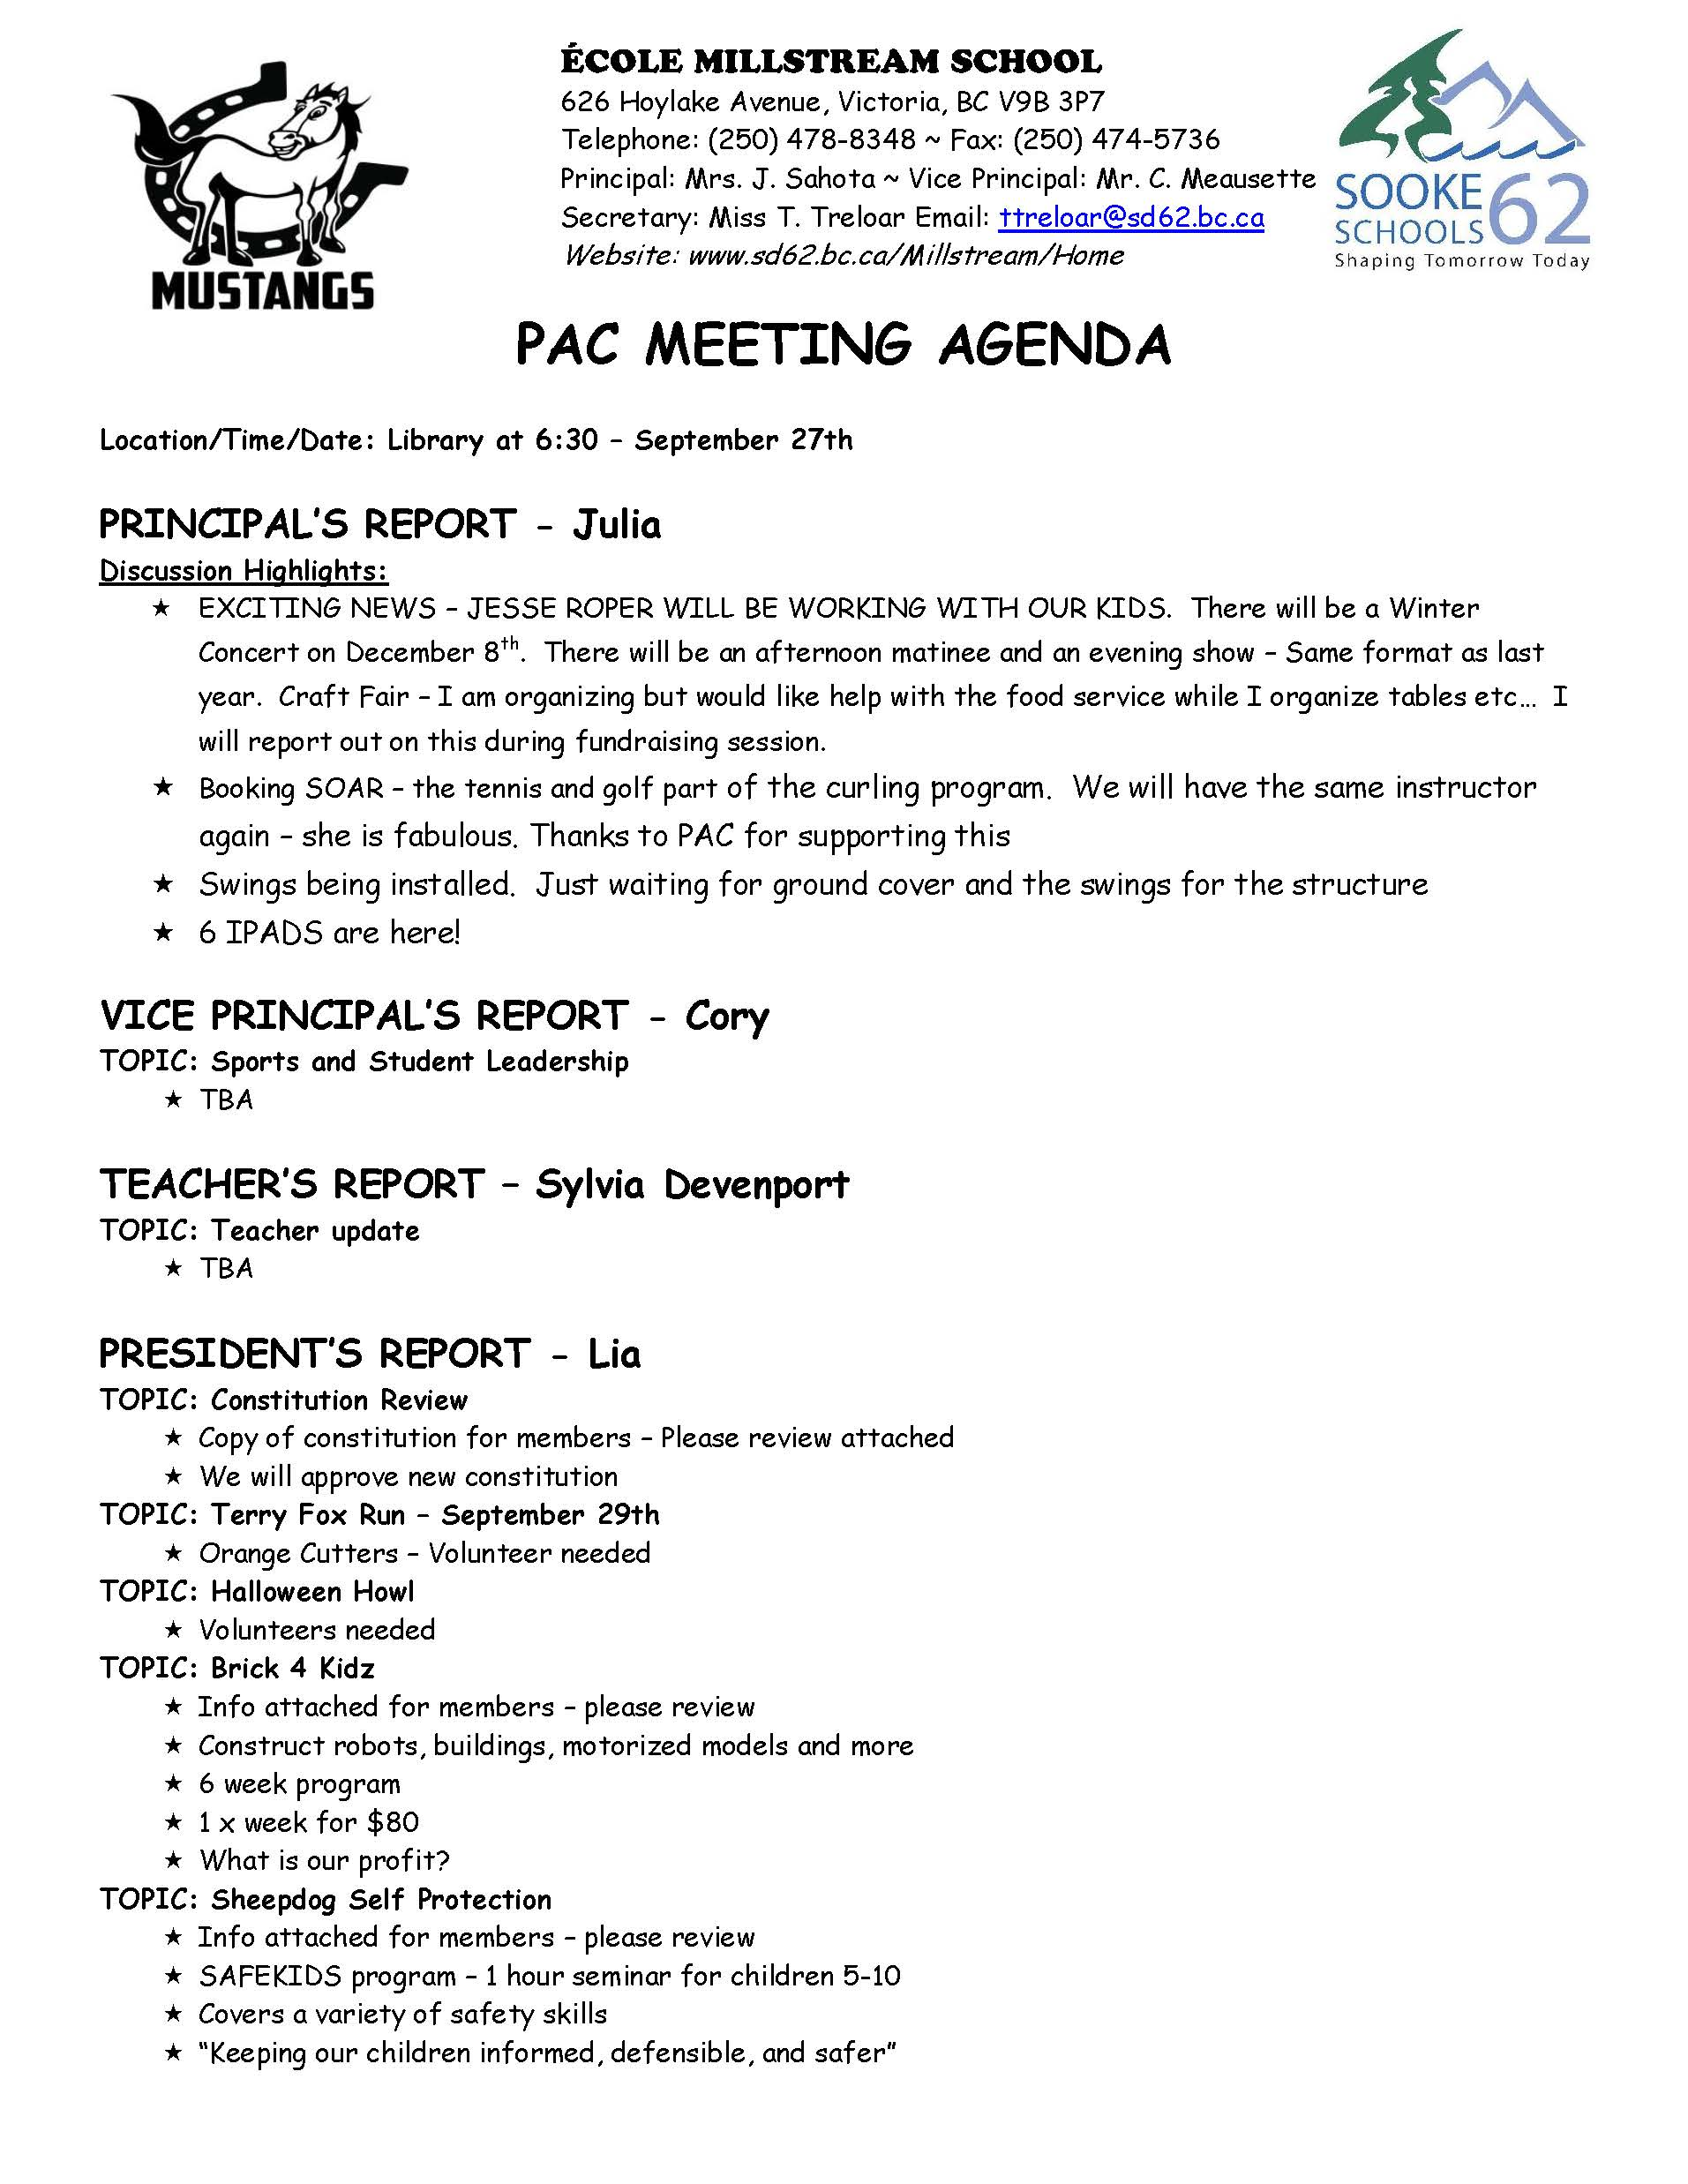 pac-meeting-agenda-september-27-2016_page_1